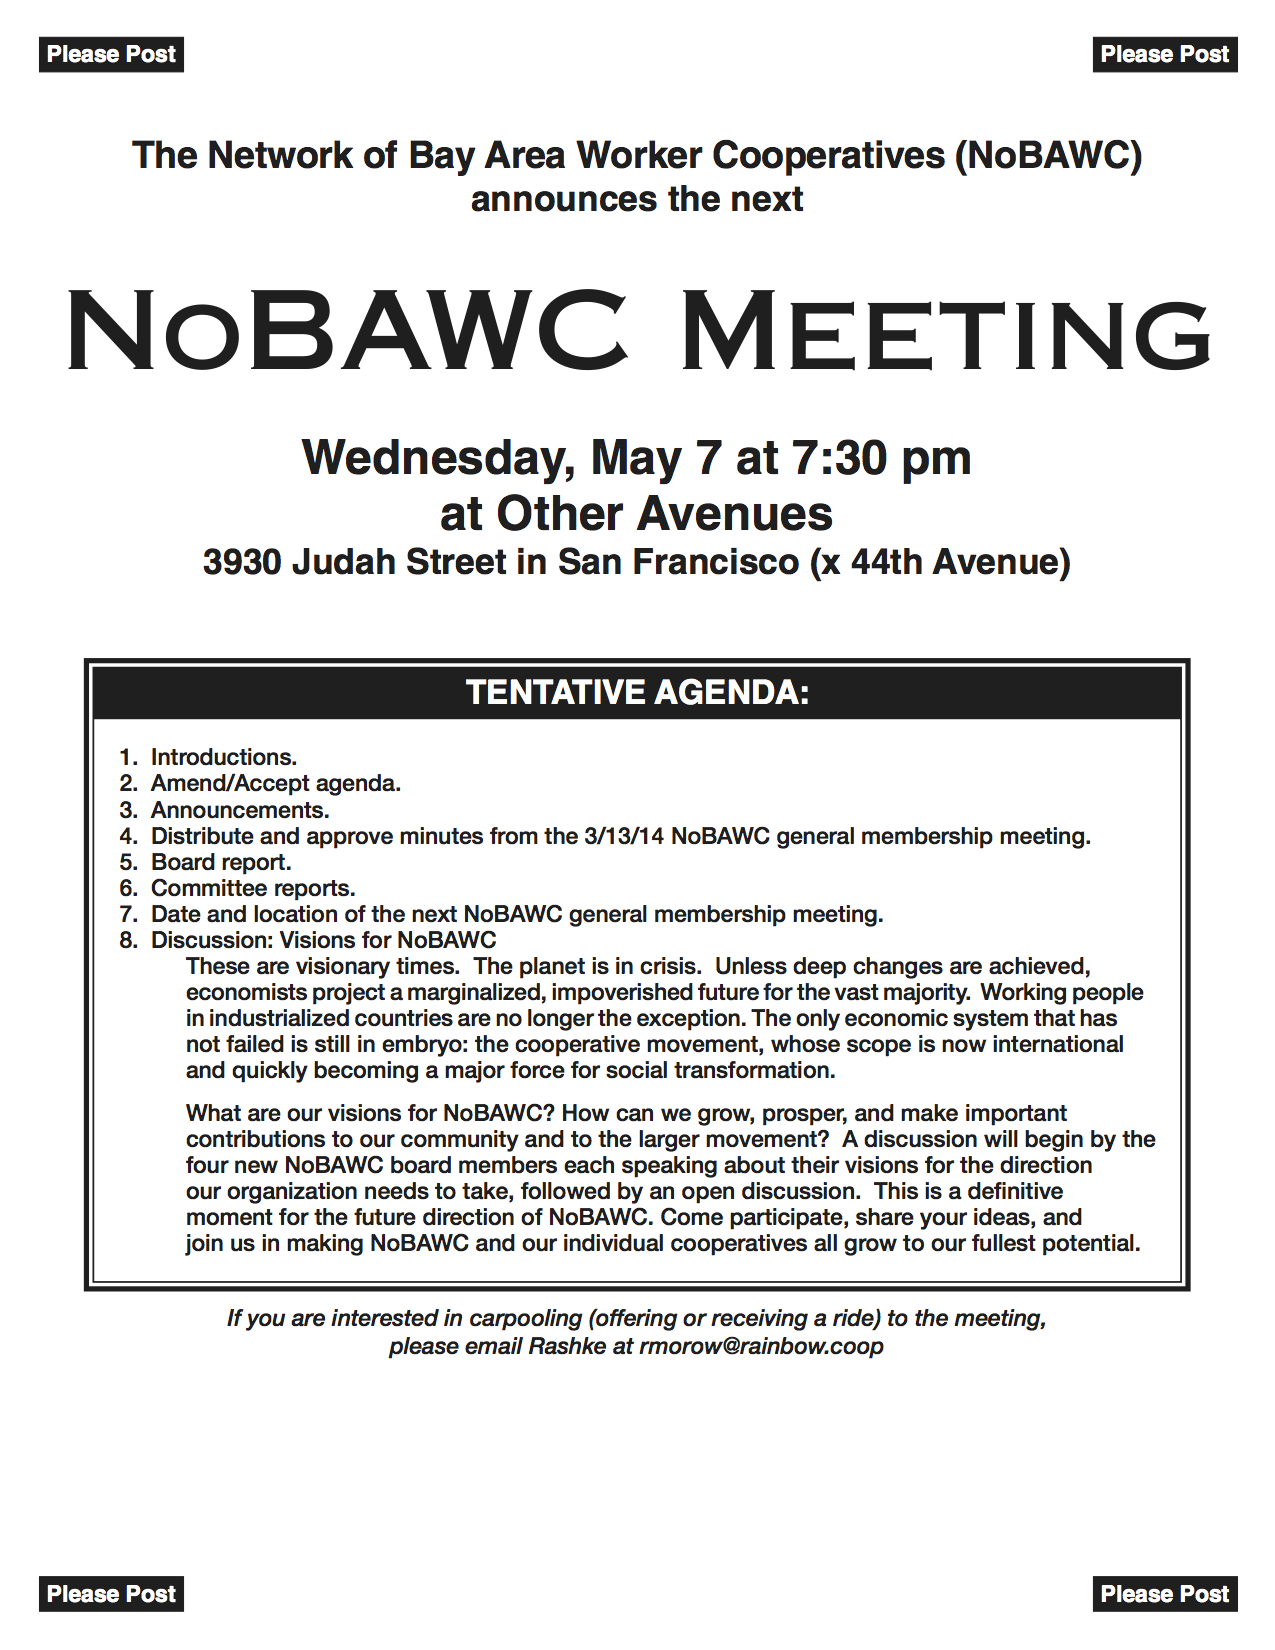 NoBAWC, say what?